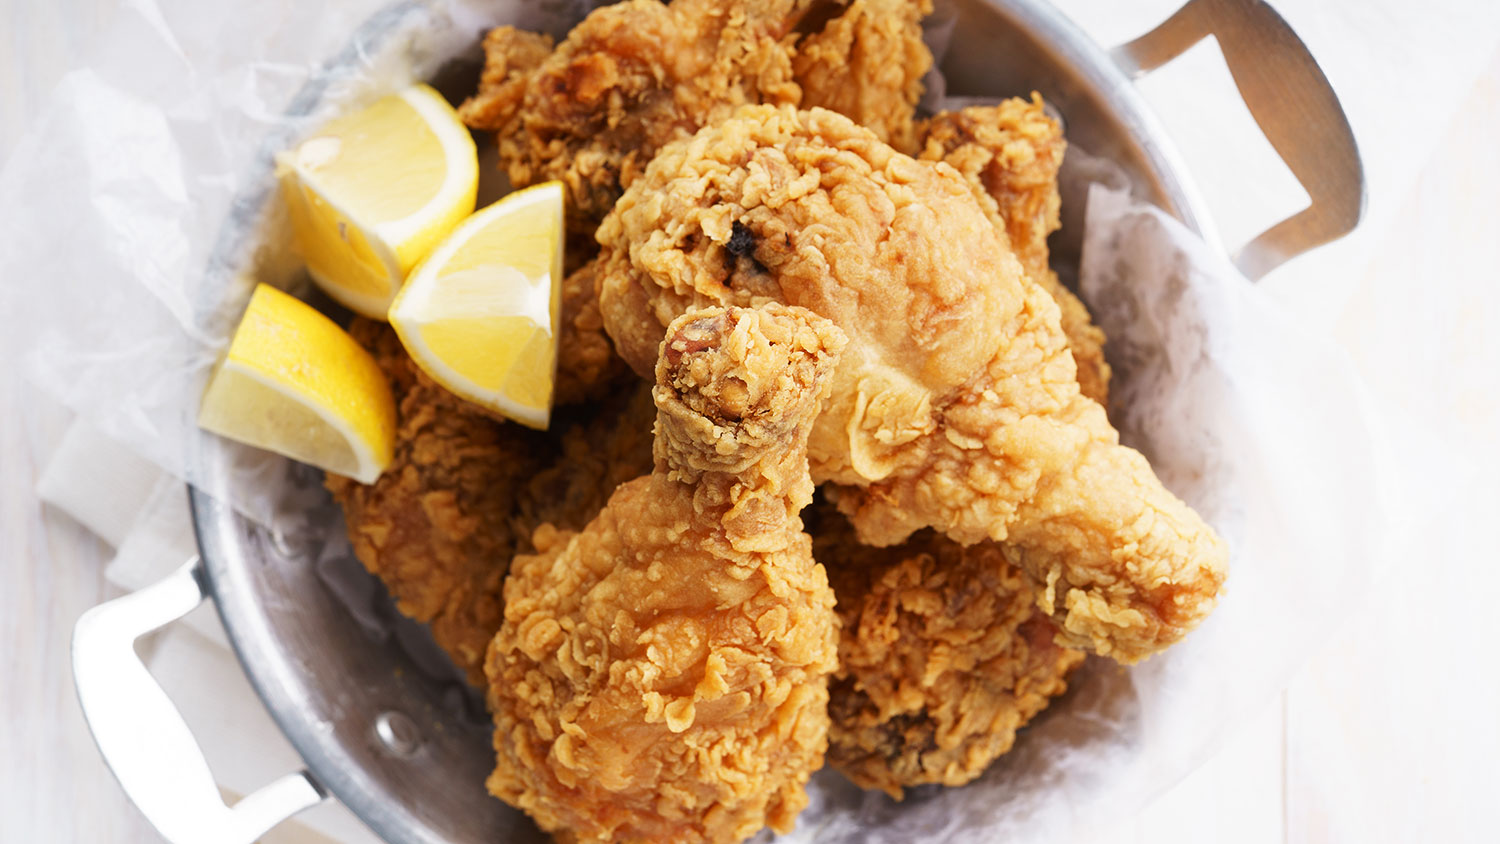 science behind fried chicken